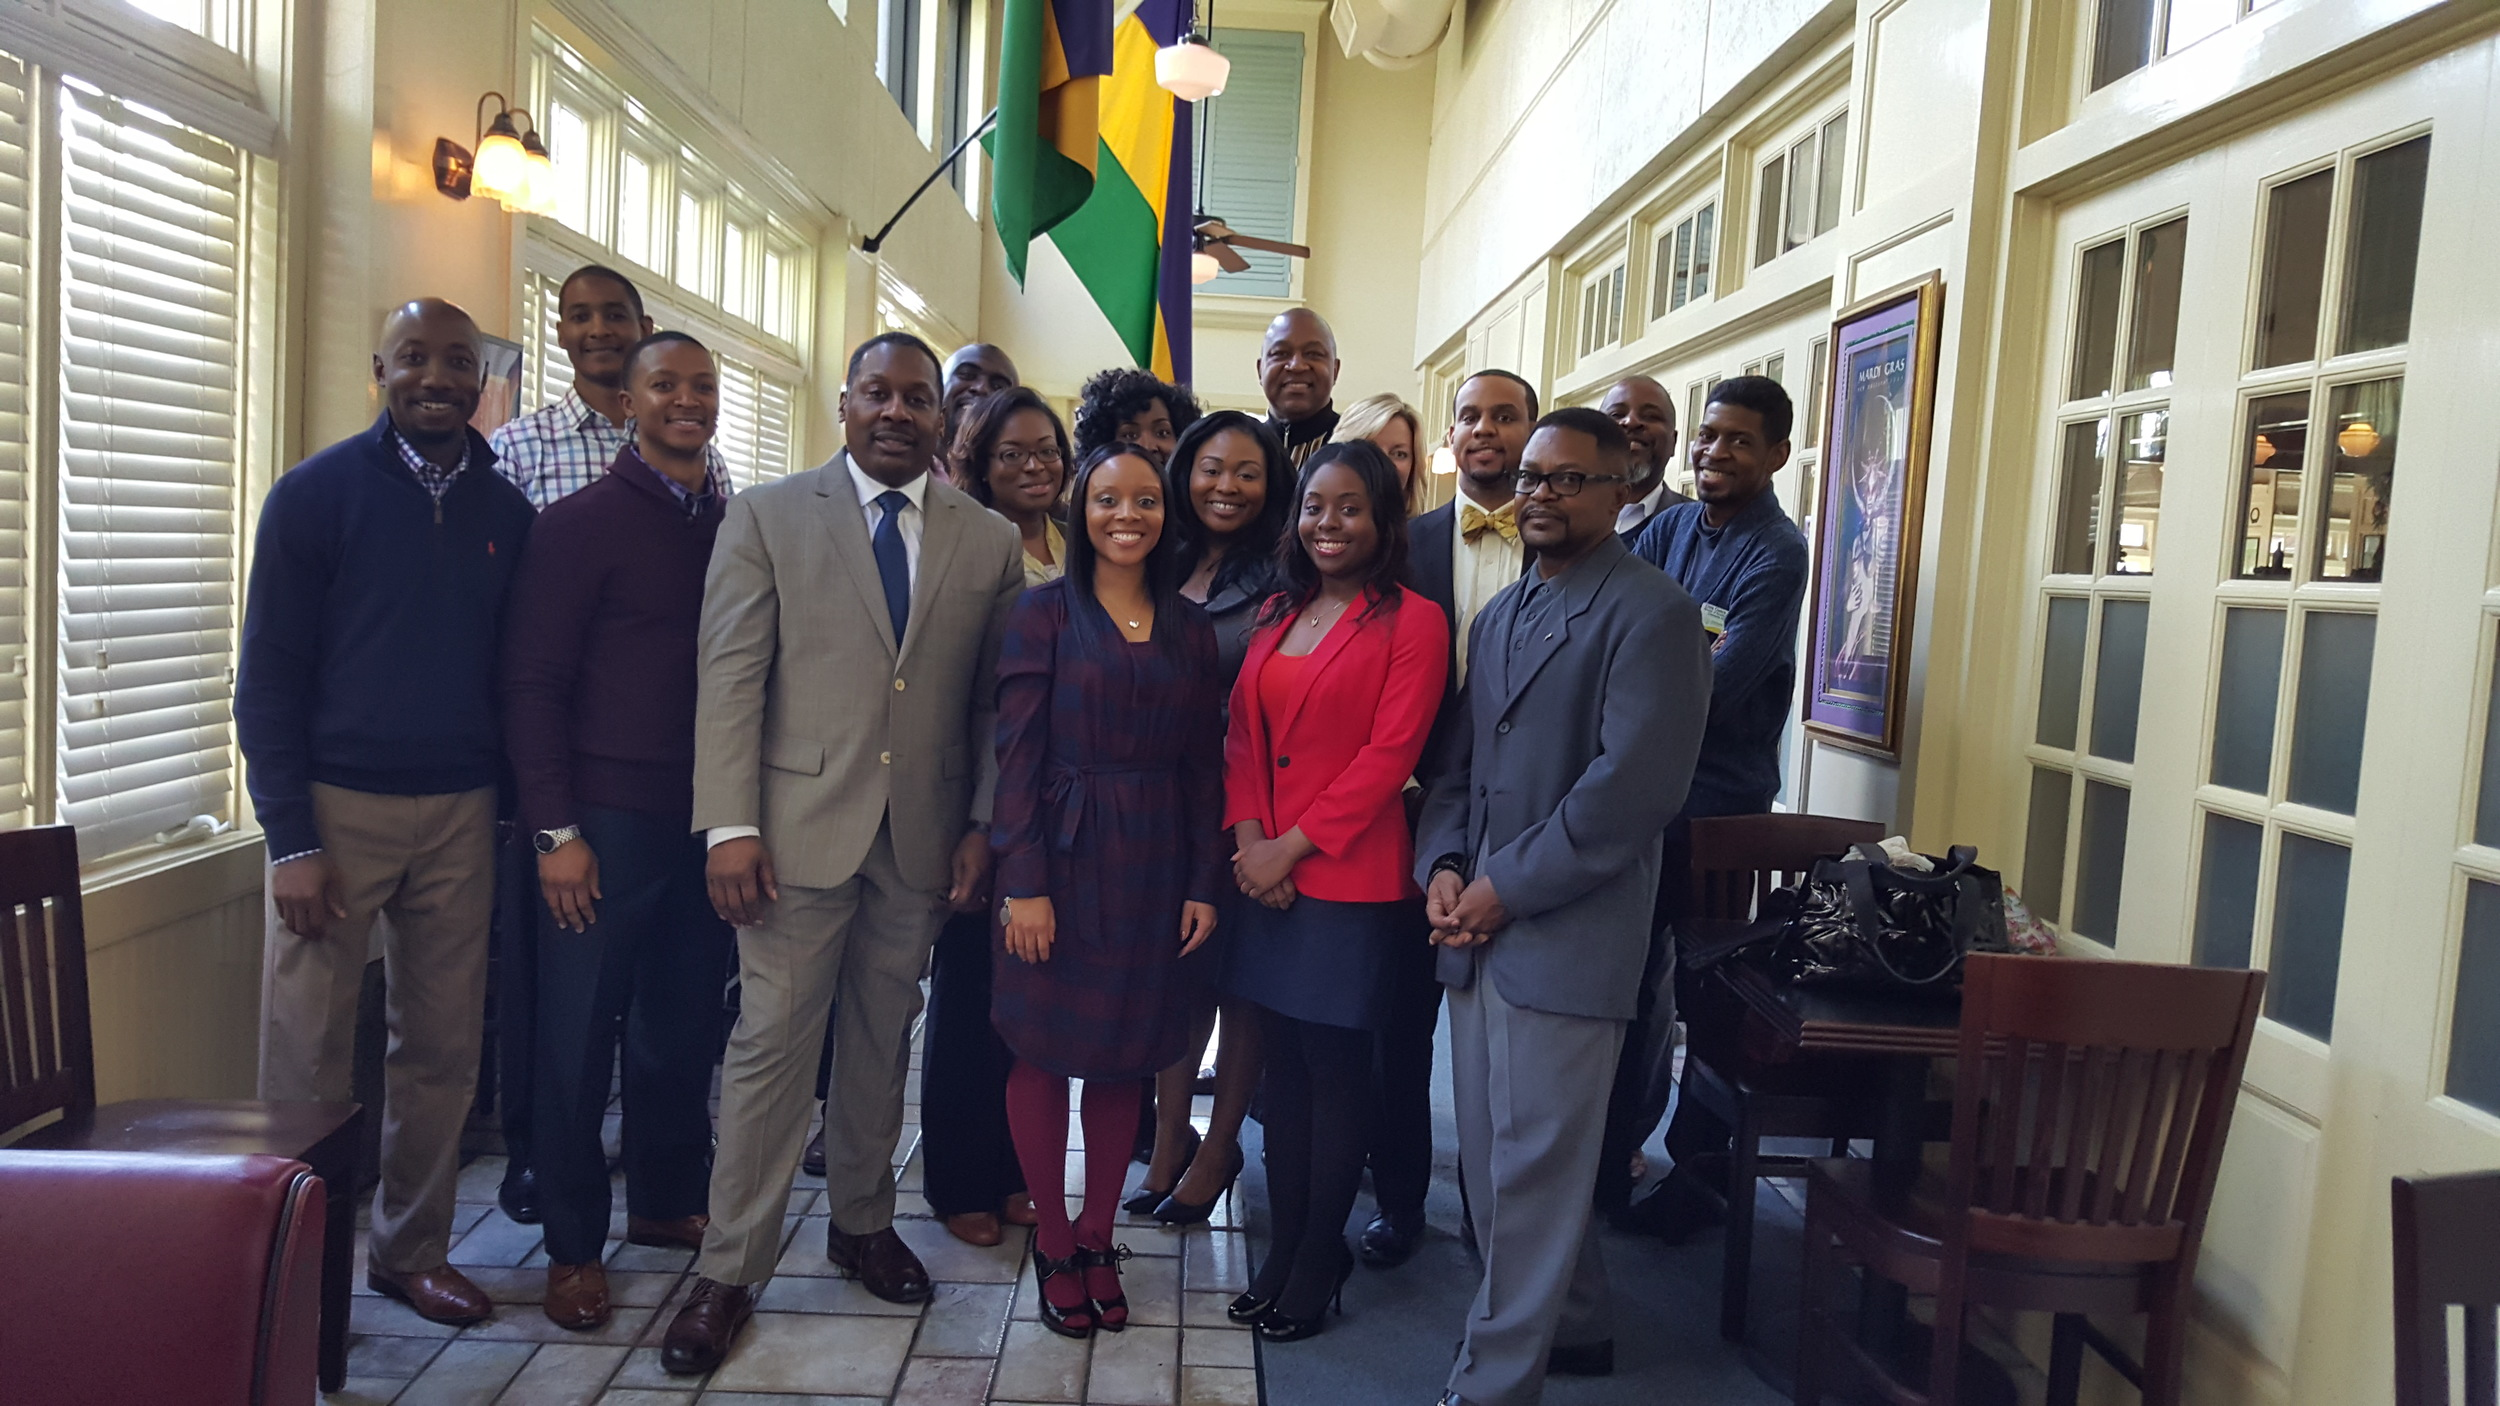 NAHSE members join Dr. Thomas LaVeist for a photo after the event -January 30, 2016 @ Owen Brennan's.